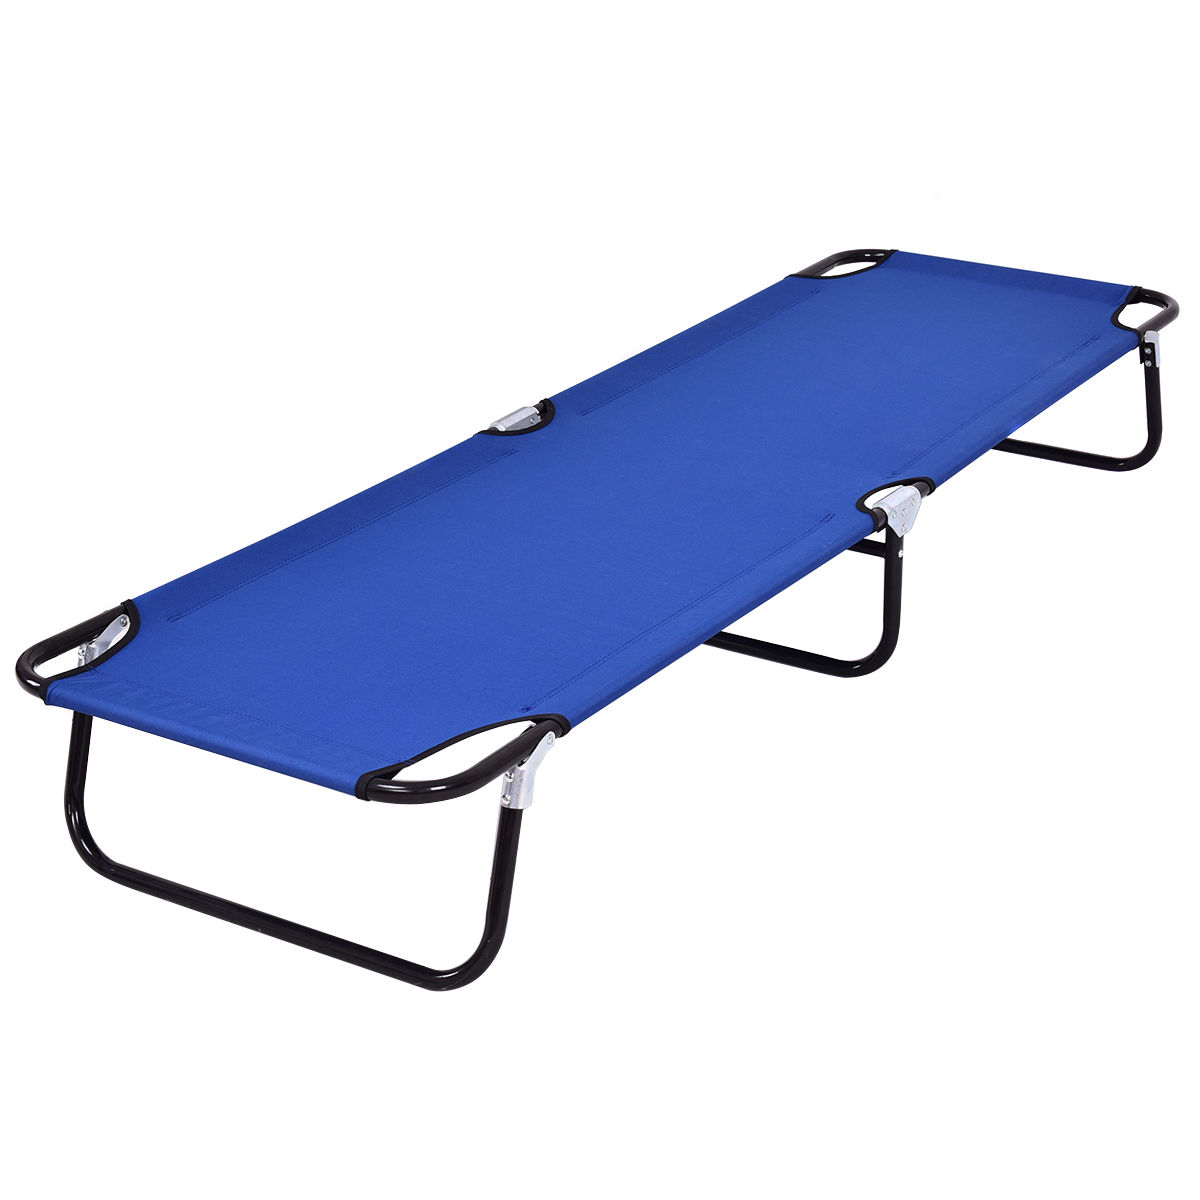 Costway Blue Folding Camping Bed Outdoor Portable Military Cot Sleeping Hiking Travel by Costway